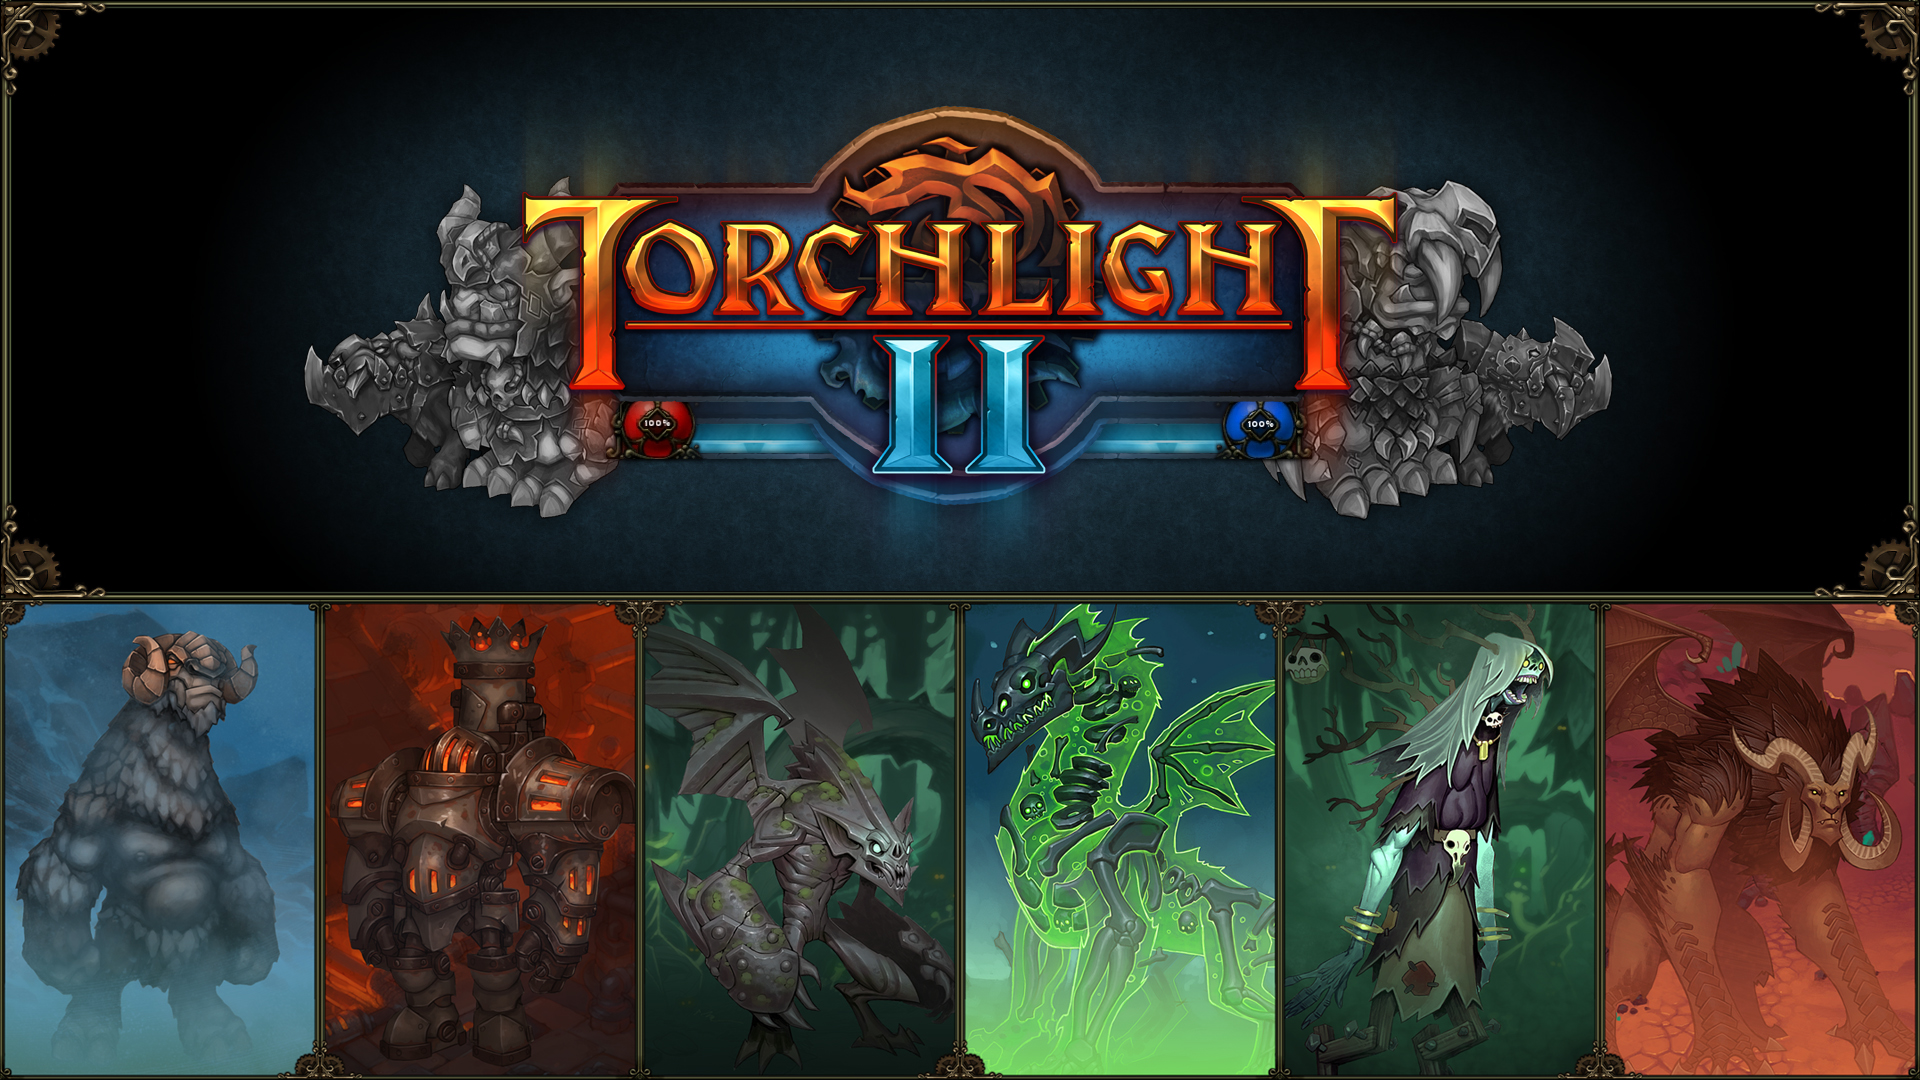 torchlight 2 online wallpaper 1 Chris Top 5 Games of 2012